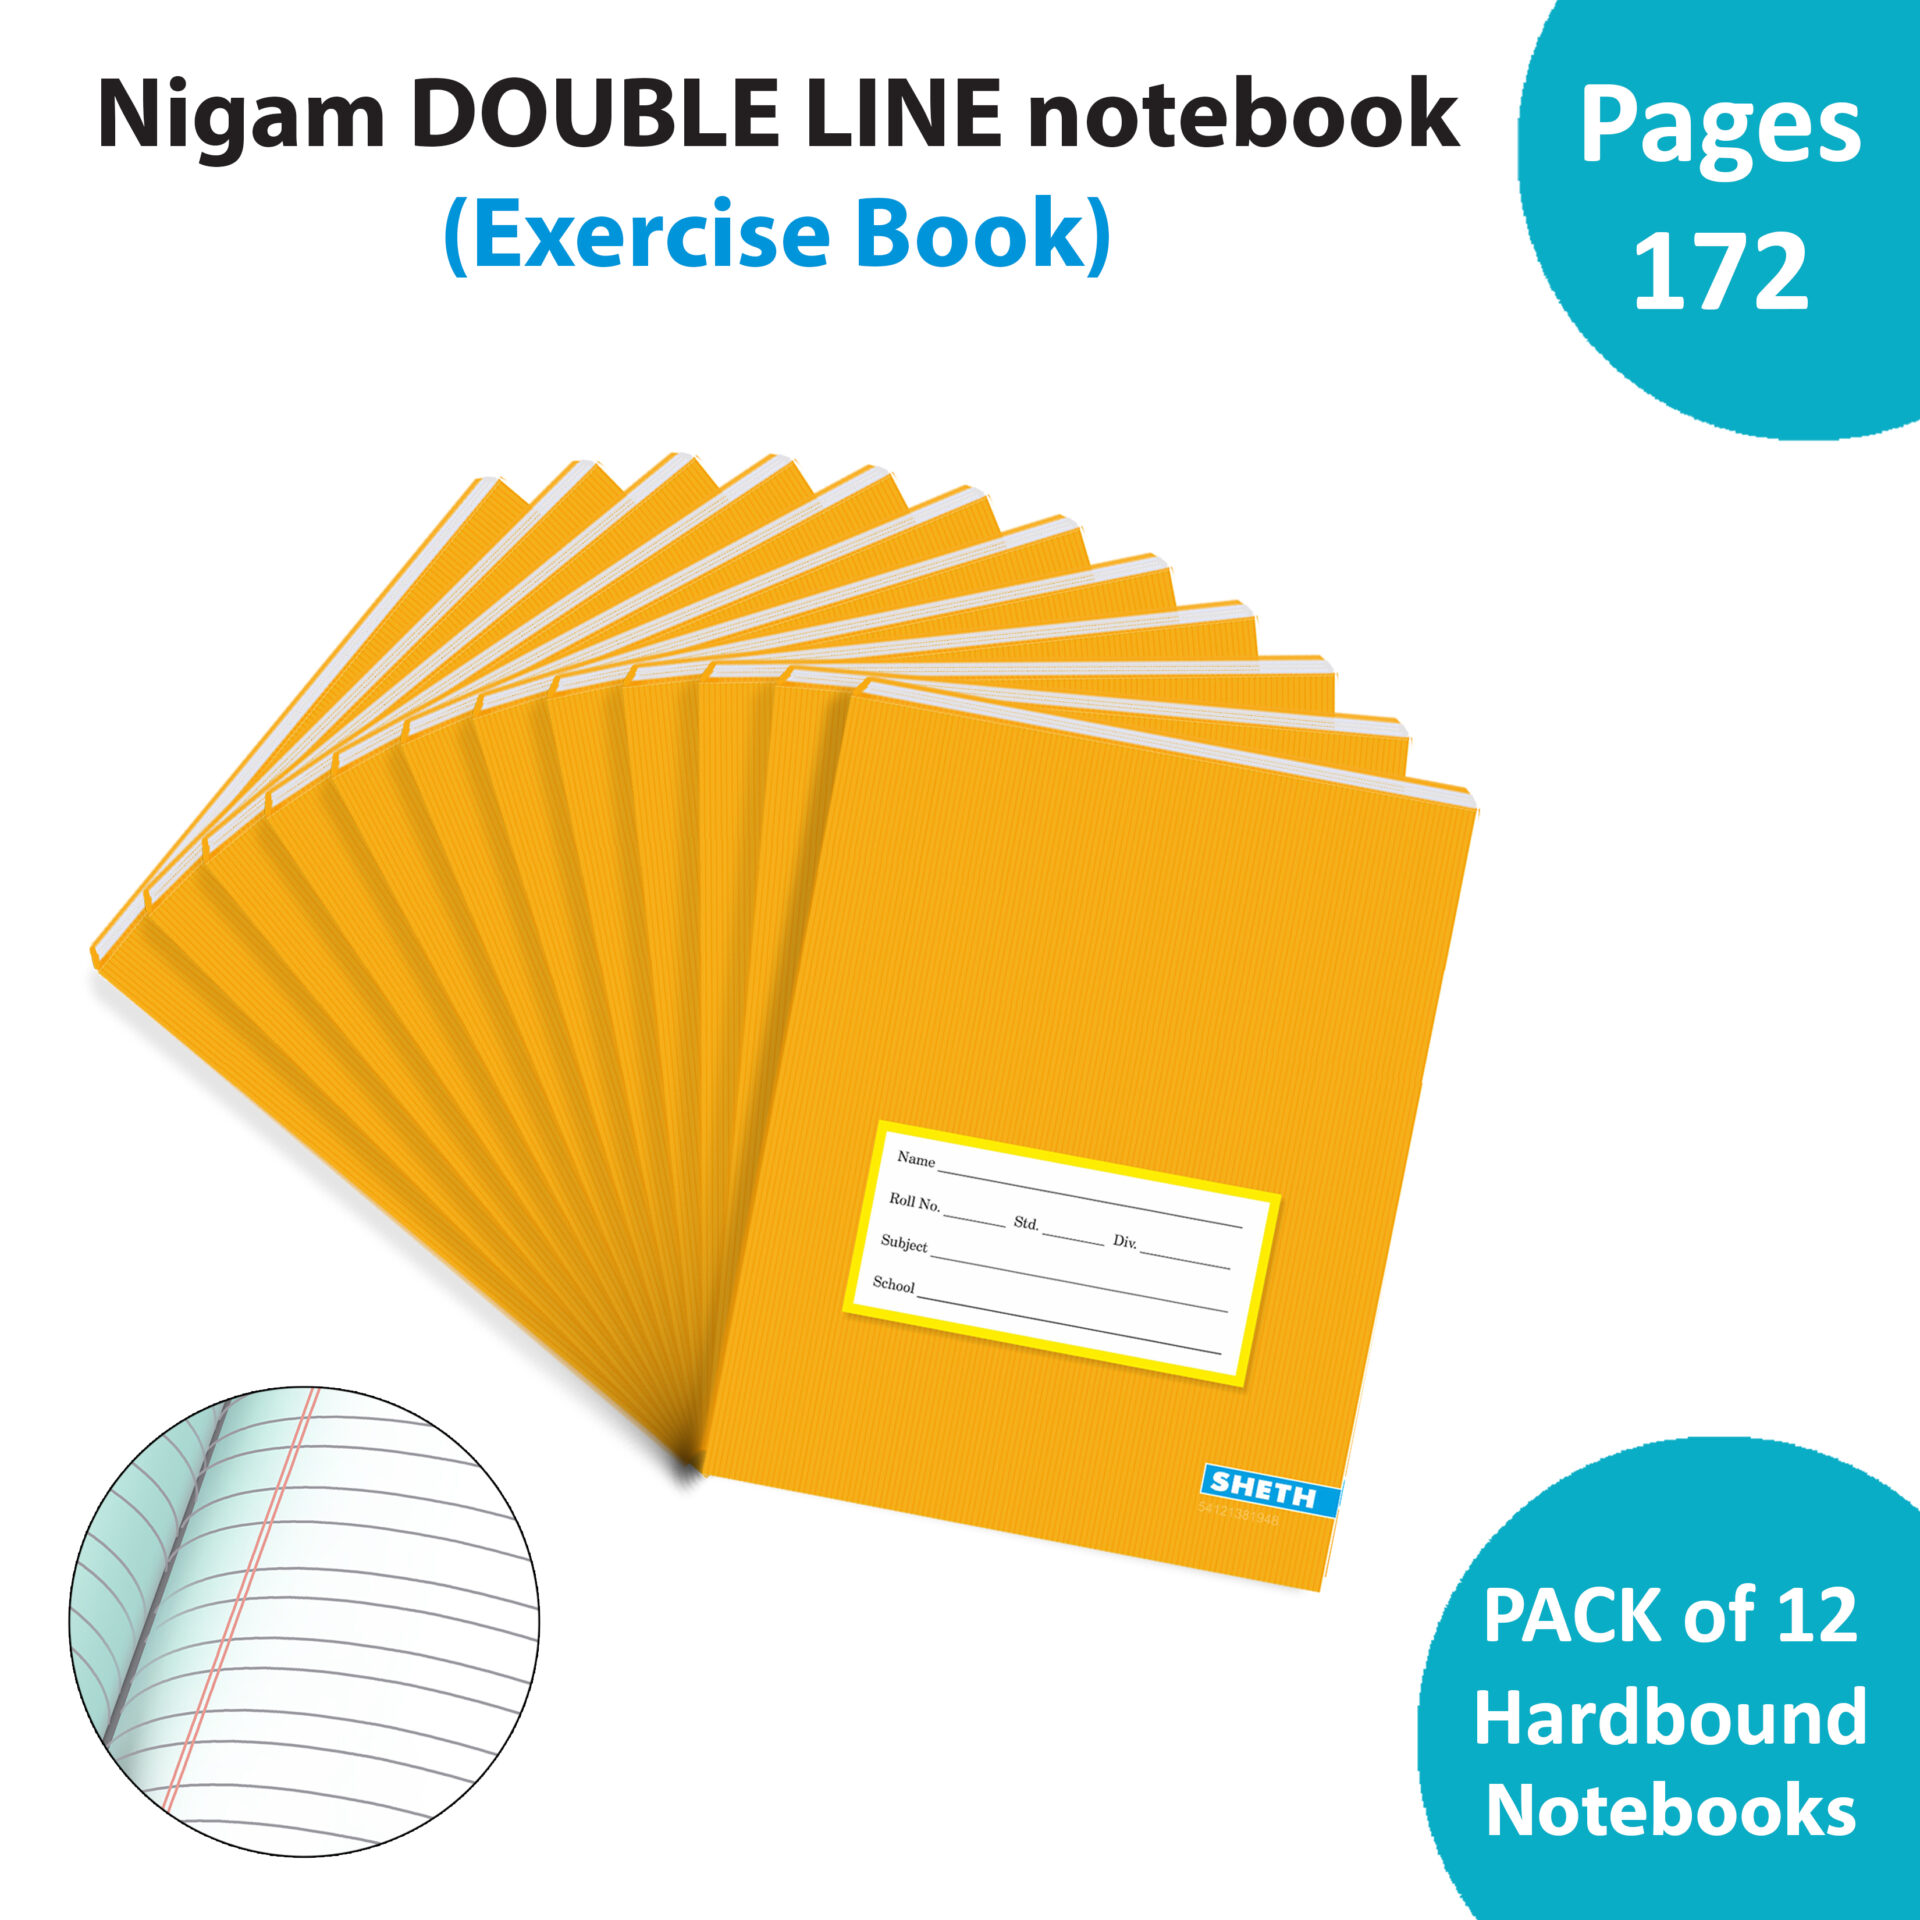 Nigam Double Line Note Book 172 Pages Hard Bound Set of 12 1